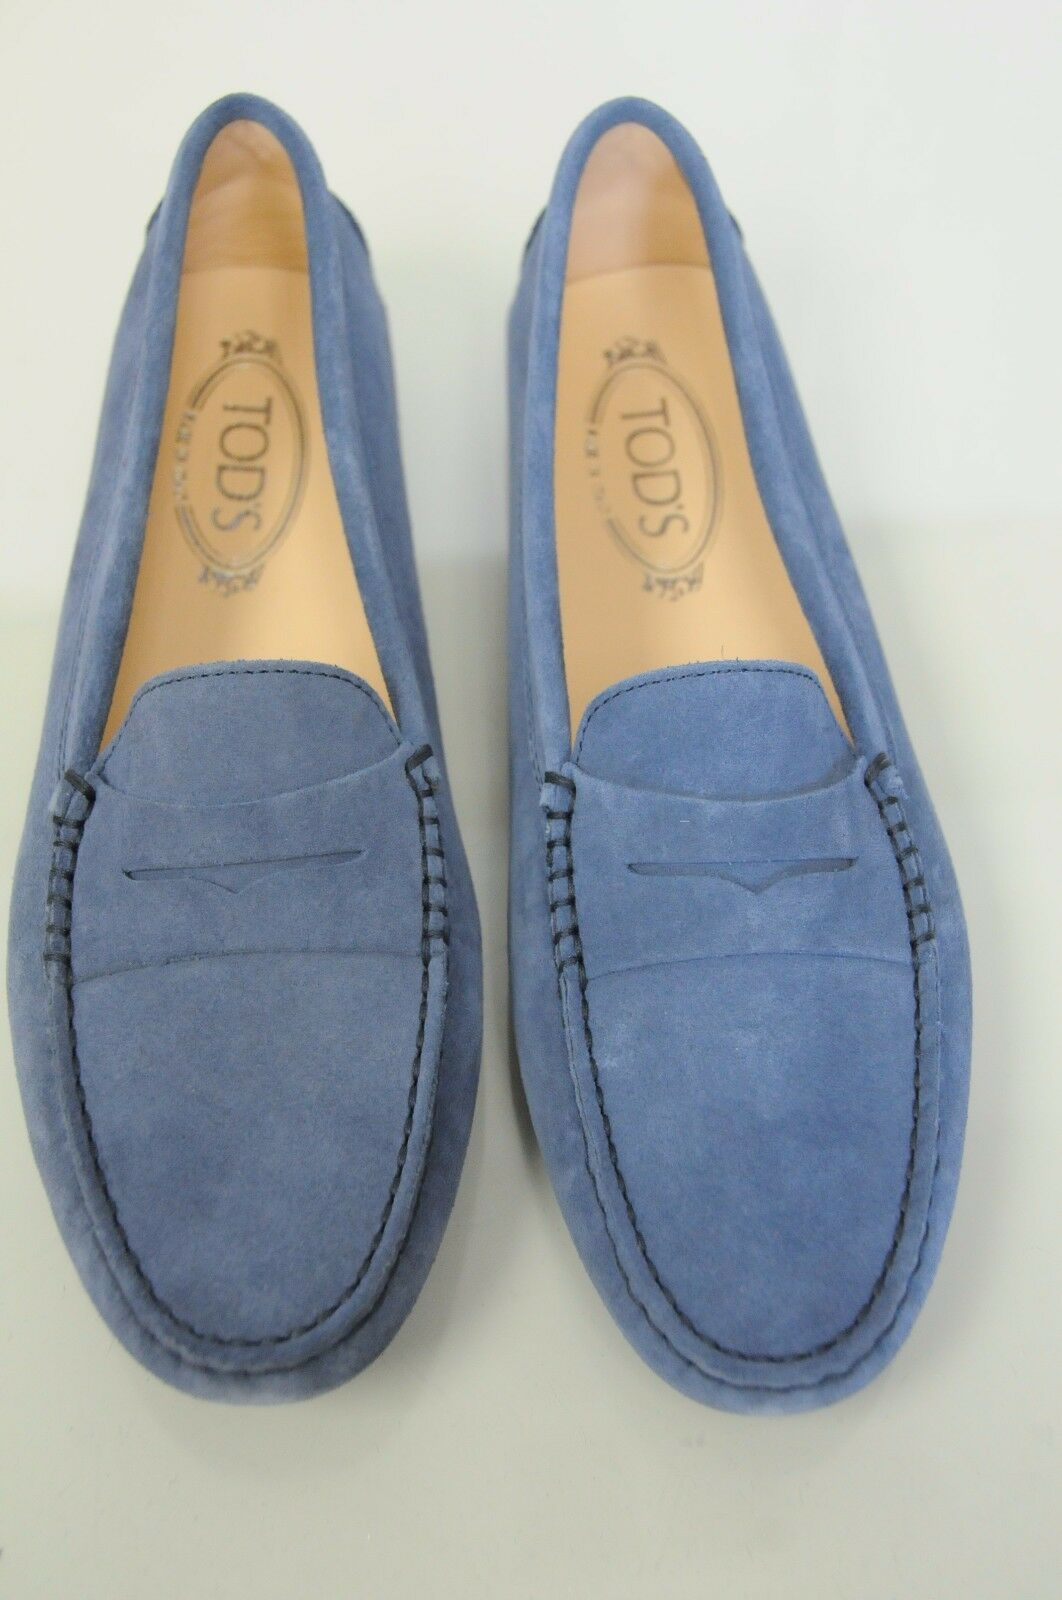 New TOD'S Flats Mocassins Penny Driving Moccasins shoes Navy bluee Suede 40